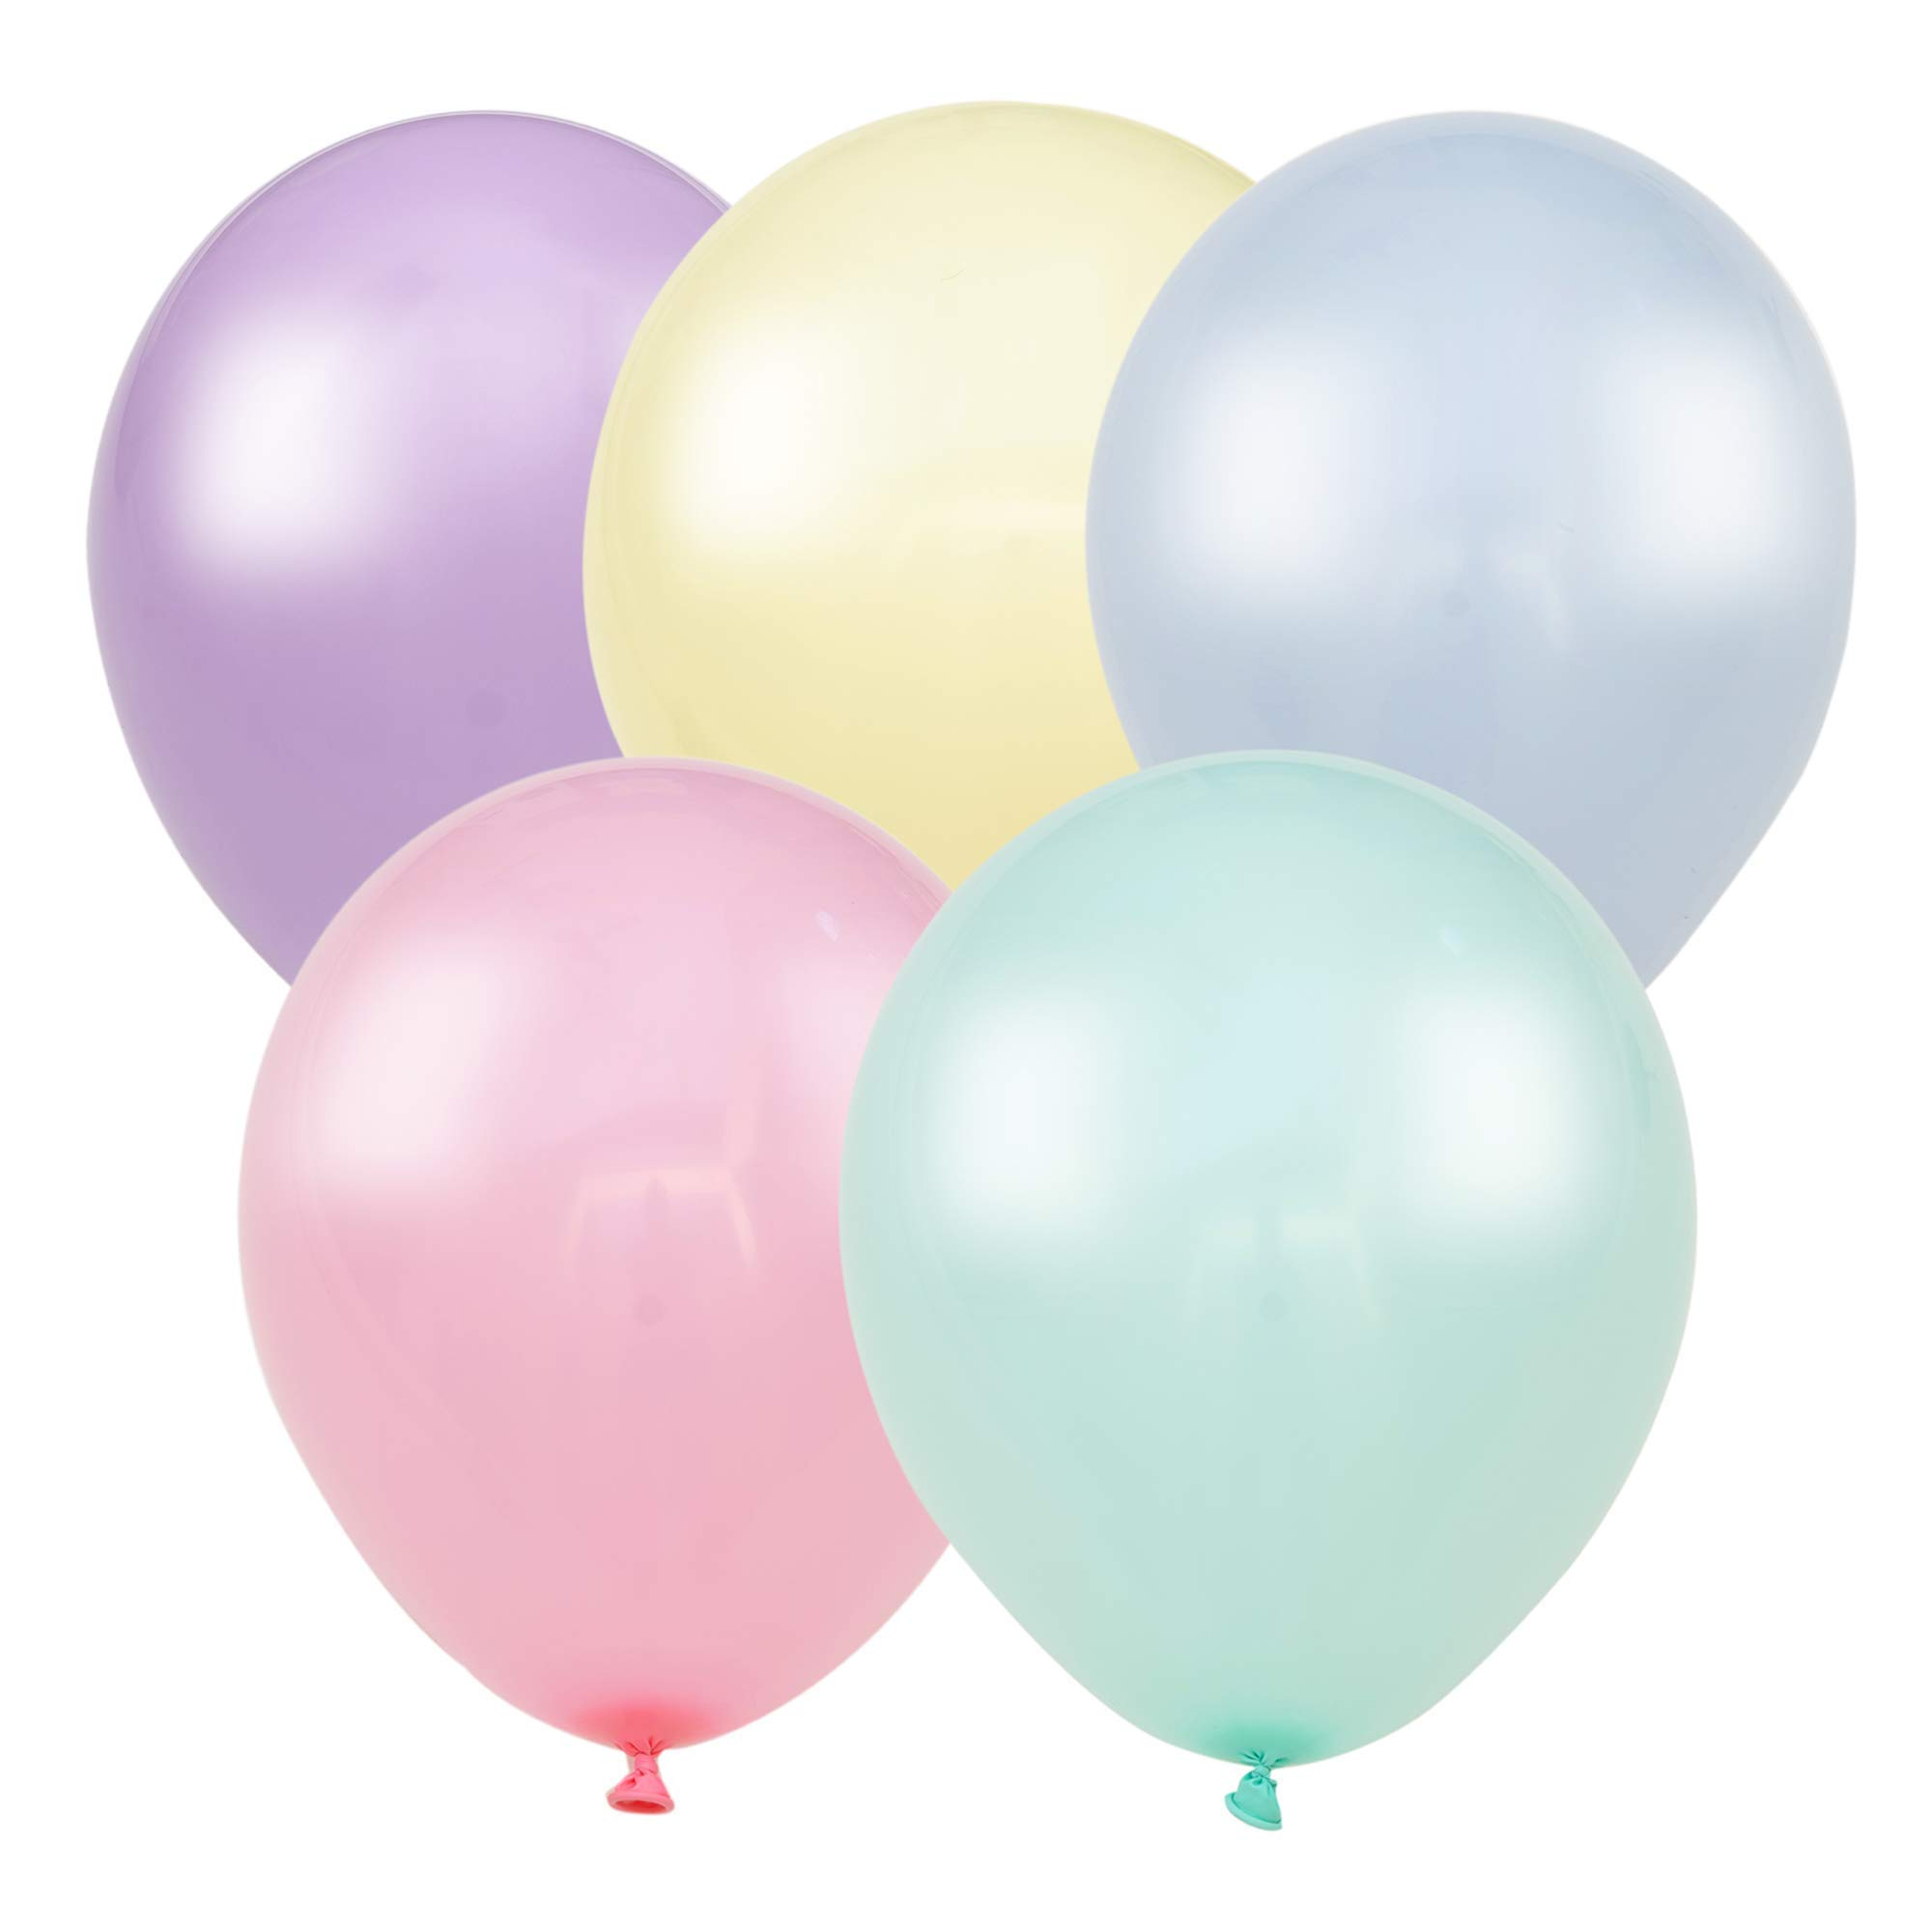 200 Small Pastel Balloons for Parties – 5 Inch Balloons Bulk Pack – Mini Assorted Blue, Light Purple, Yellow, Mint Green and Pastel Pink Balloons for Unicorn, Easter, Matte, or Macaron - Rainbow Party